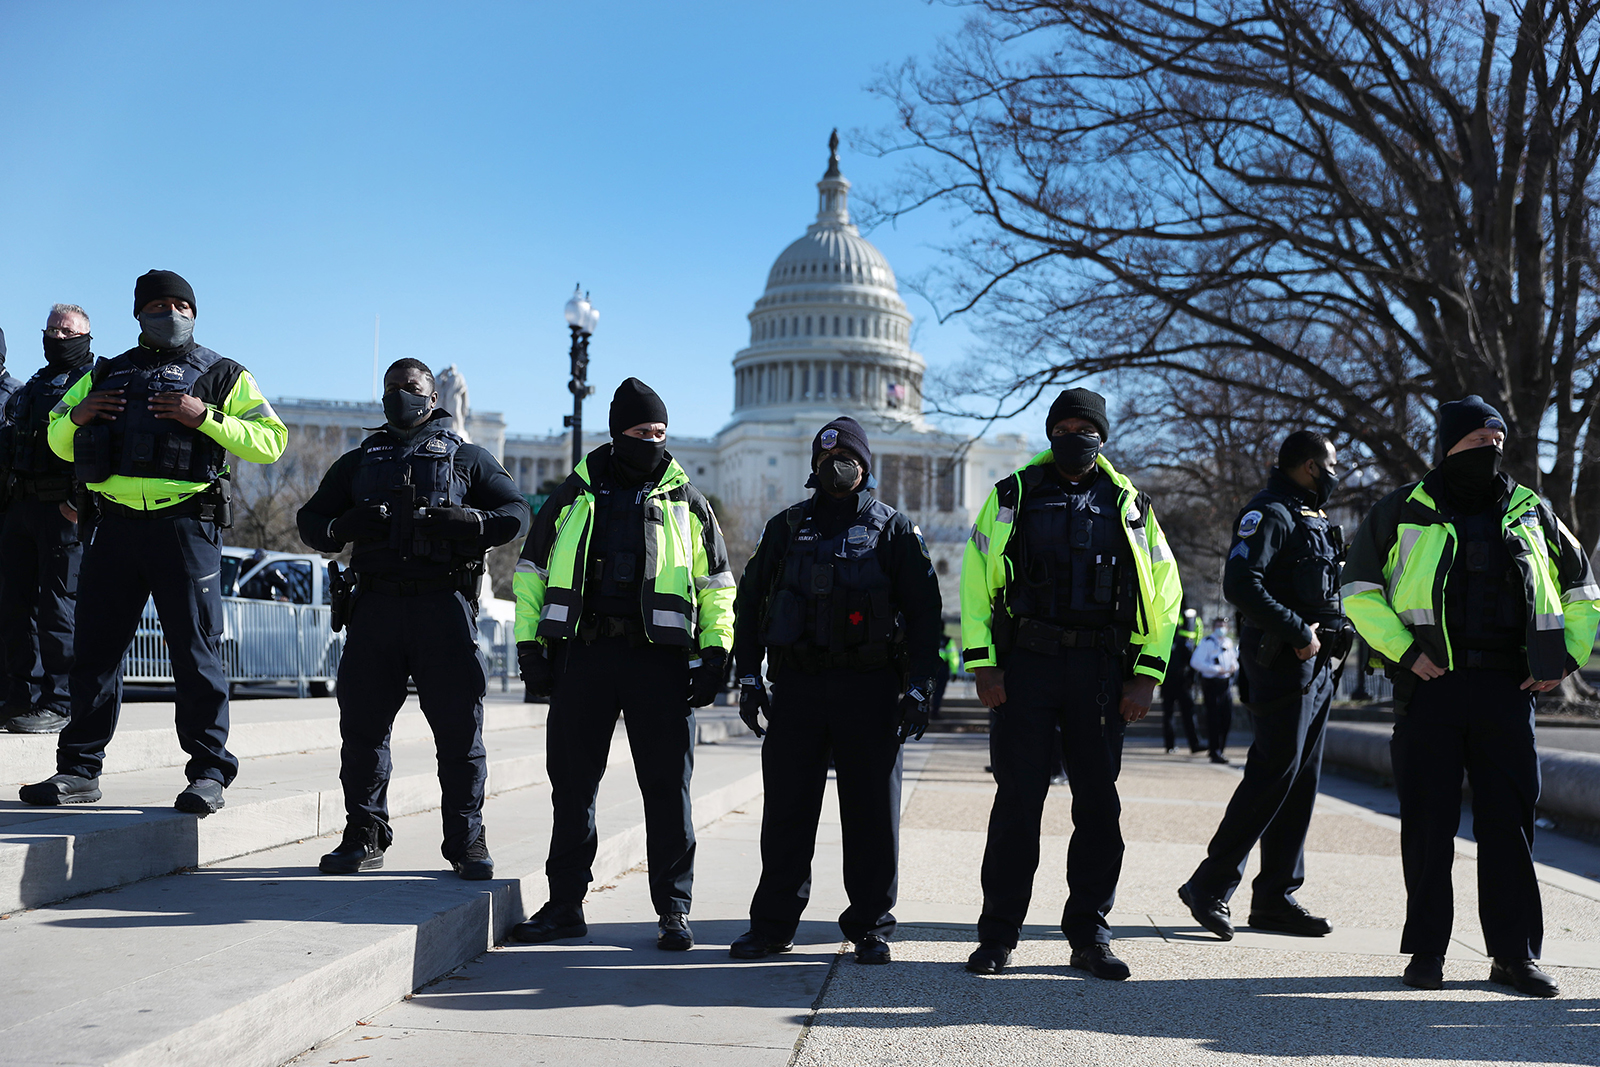 January 6 rioter charged with bringing gun to Capitol grounds, undercutting GOP claims that the pro-Trump mob was unarmed